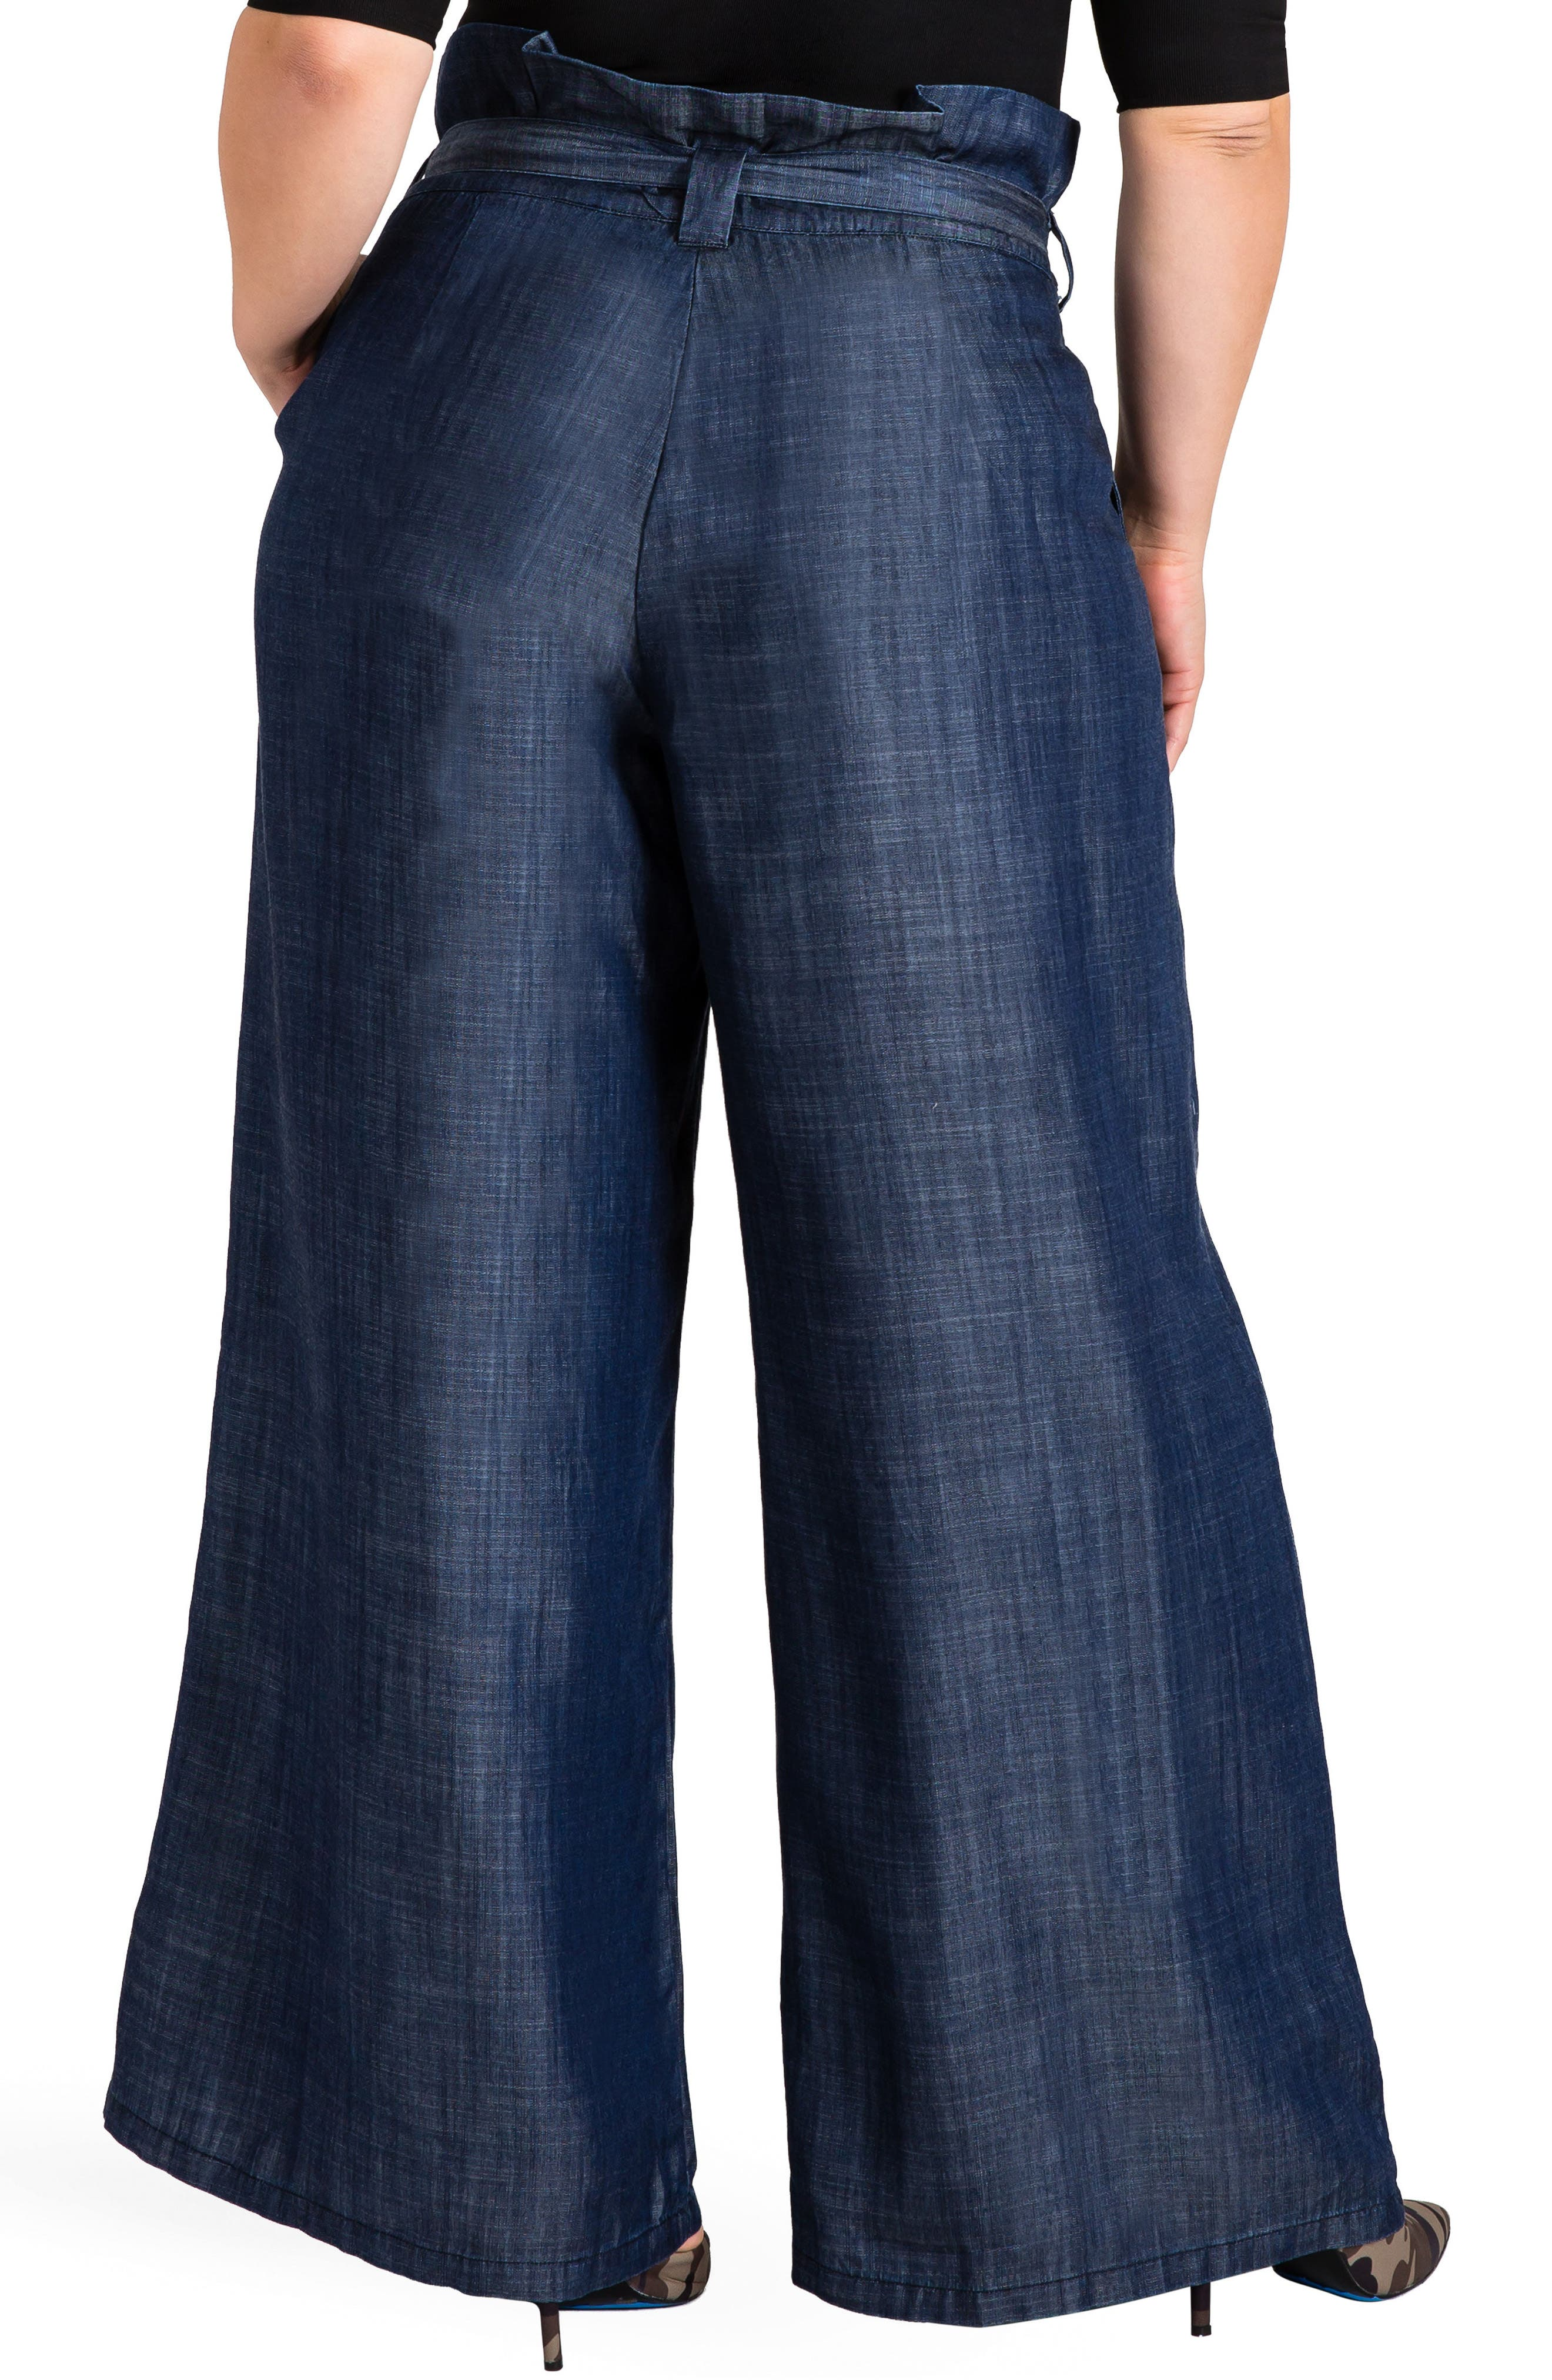 STANDARDS & PRACTICES, Cleo Wide Leg Pants, Alternate thumbnail 2, color, DARK BLUE